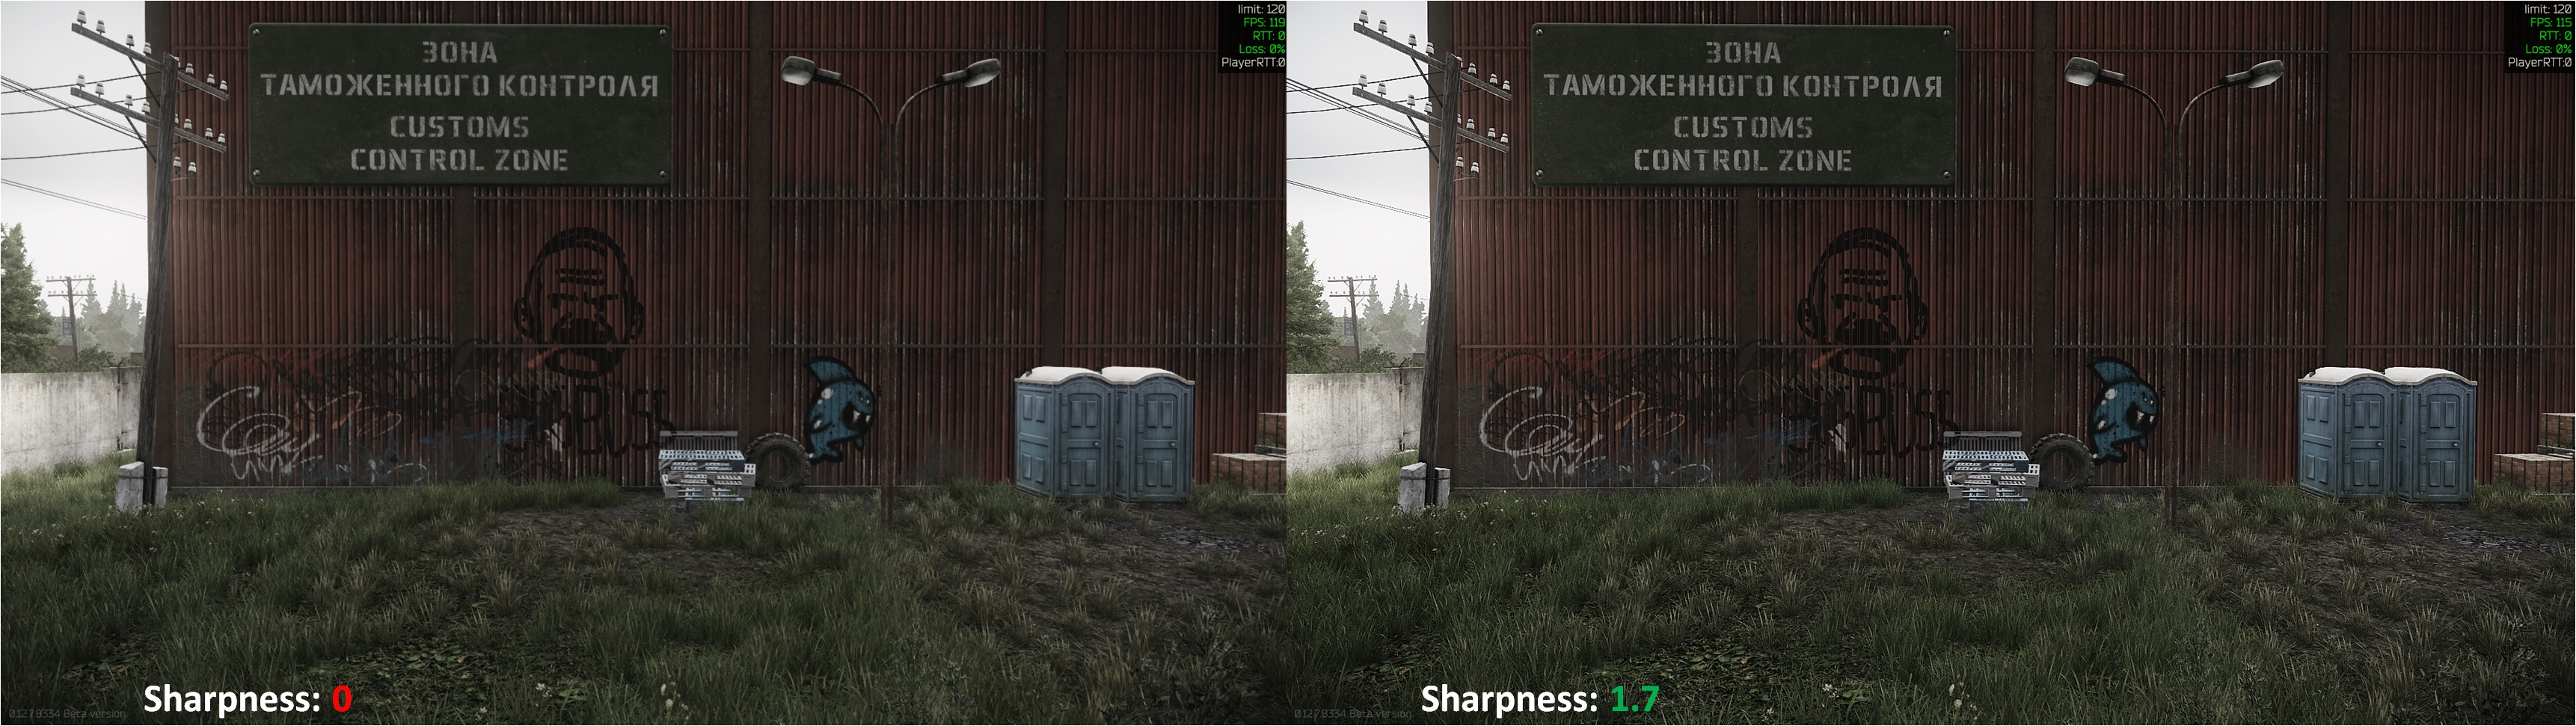 Tarkov Sharpness Comparison